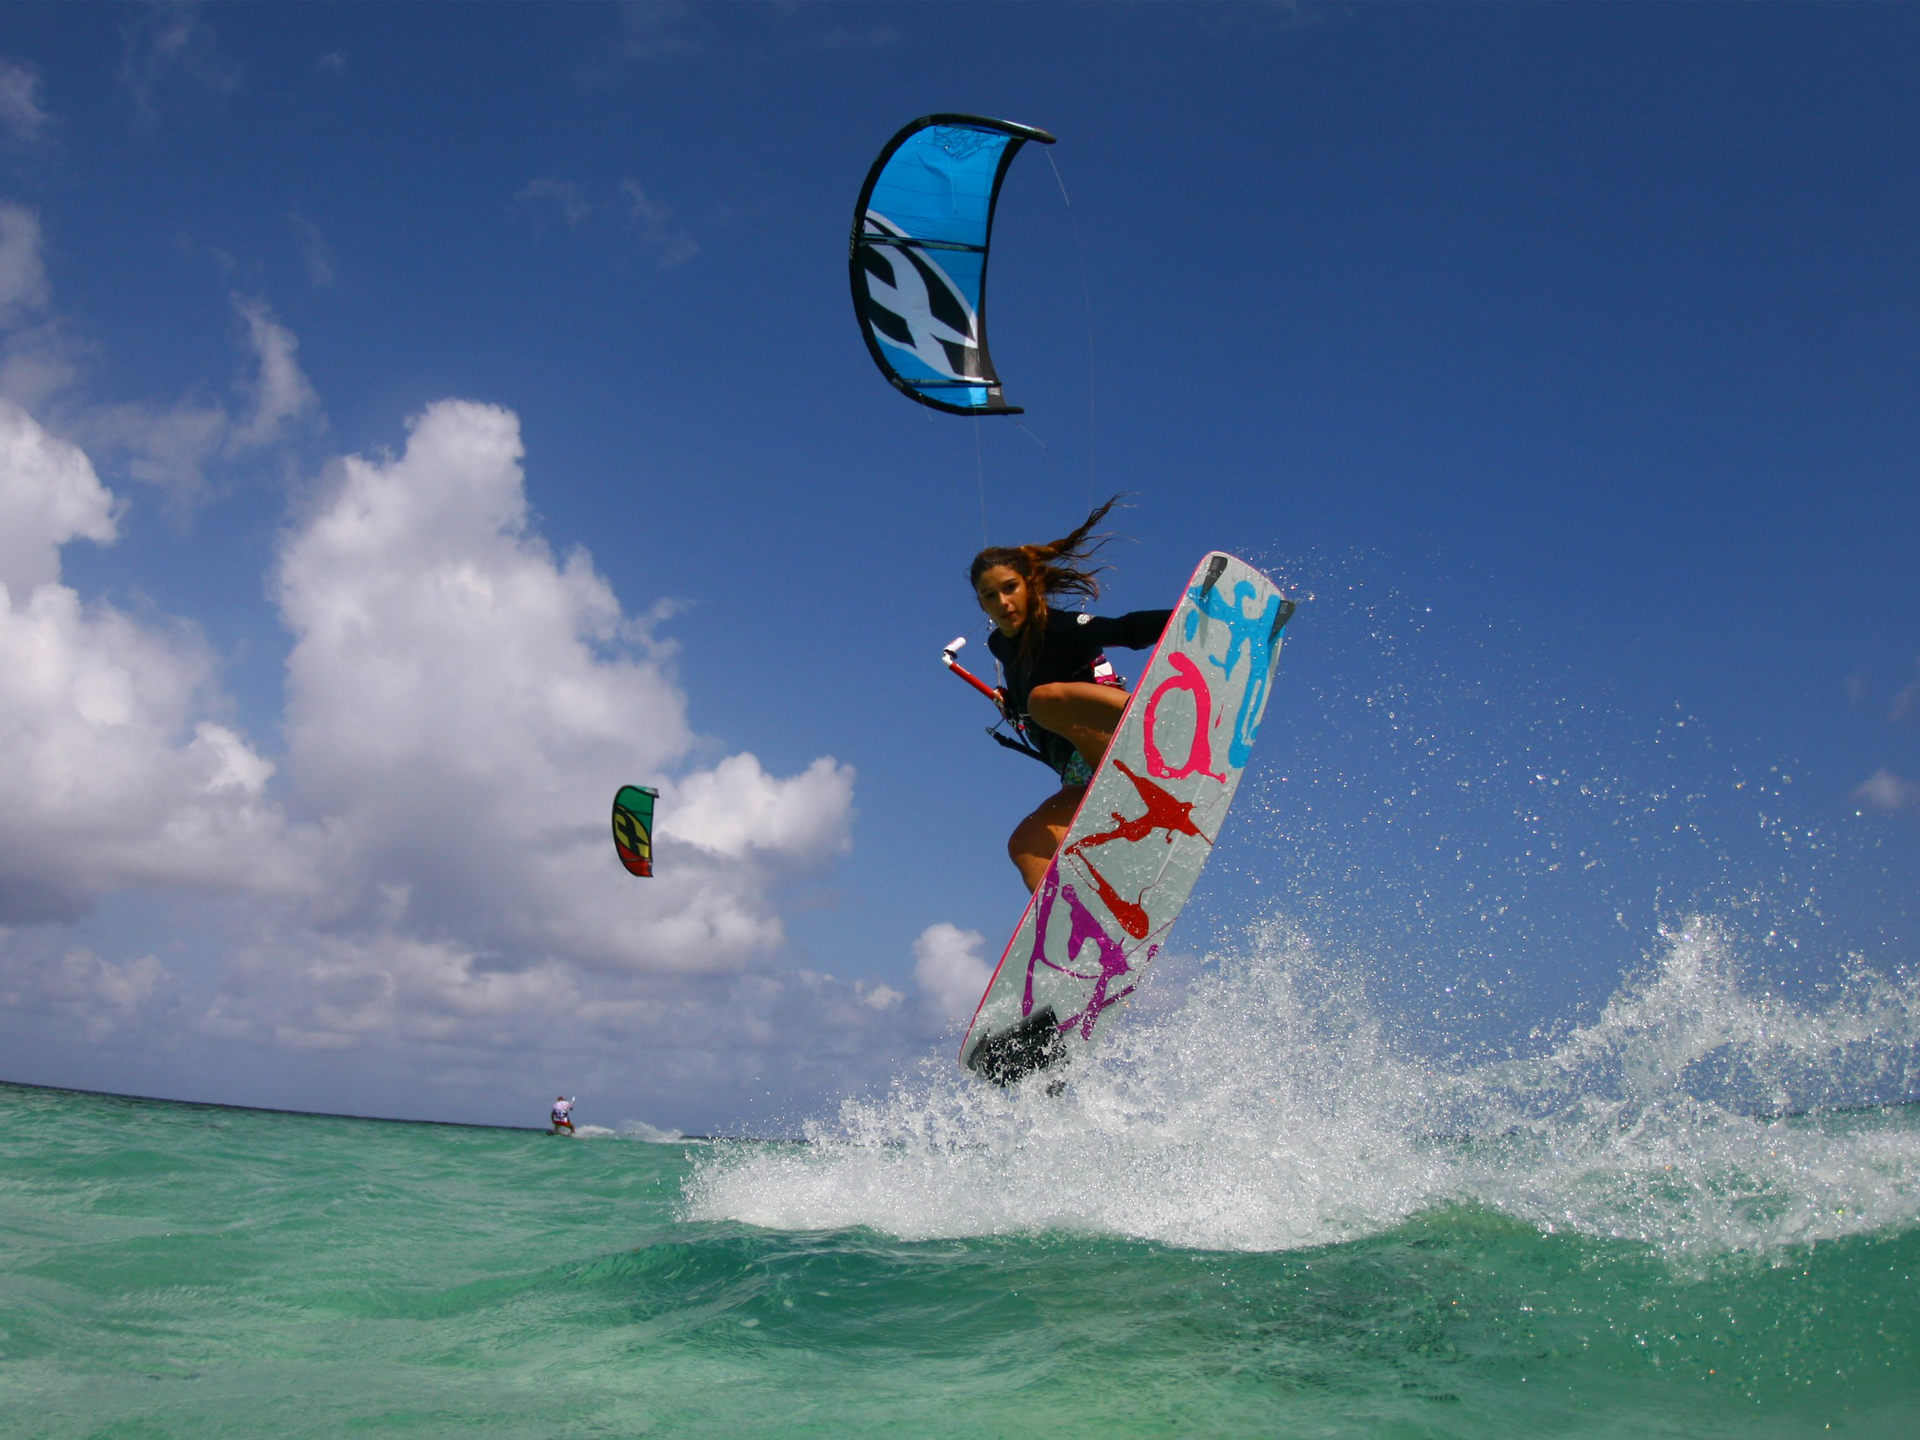 kitesurf wallpaper image - Celine Rodenas backroll with grab kitesurfing - in resolution: Standard 4:3 1920 X 1440